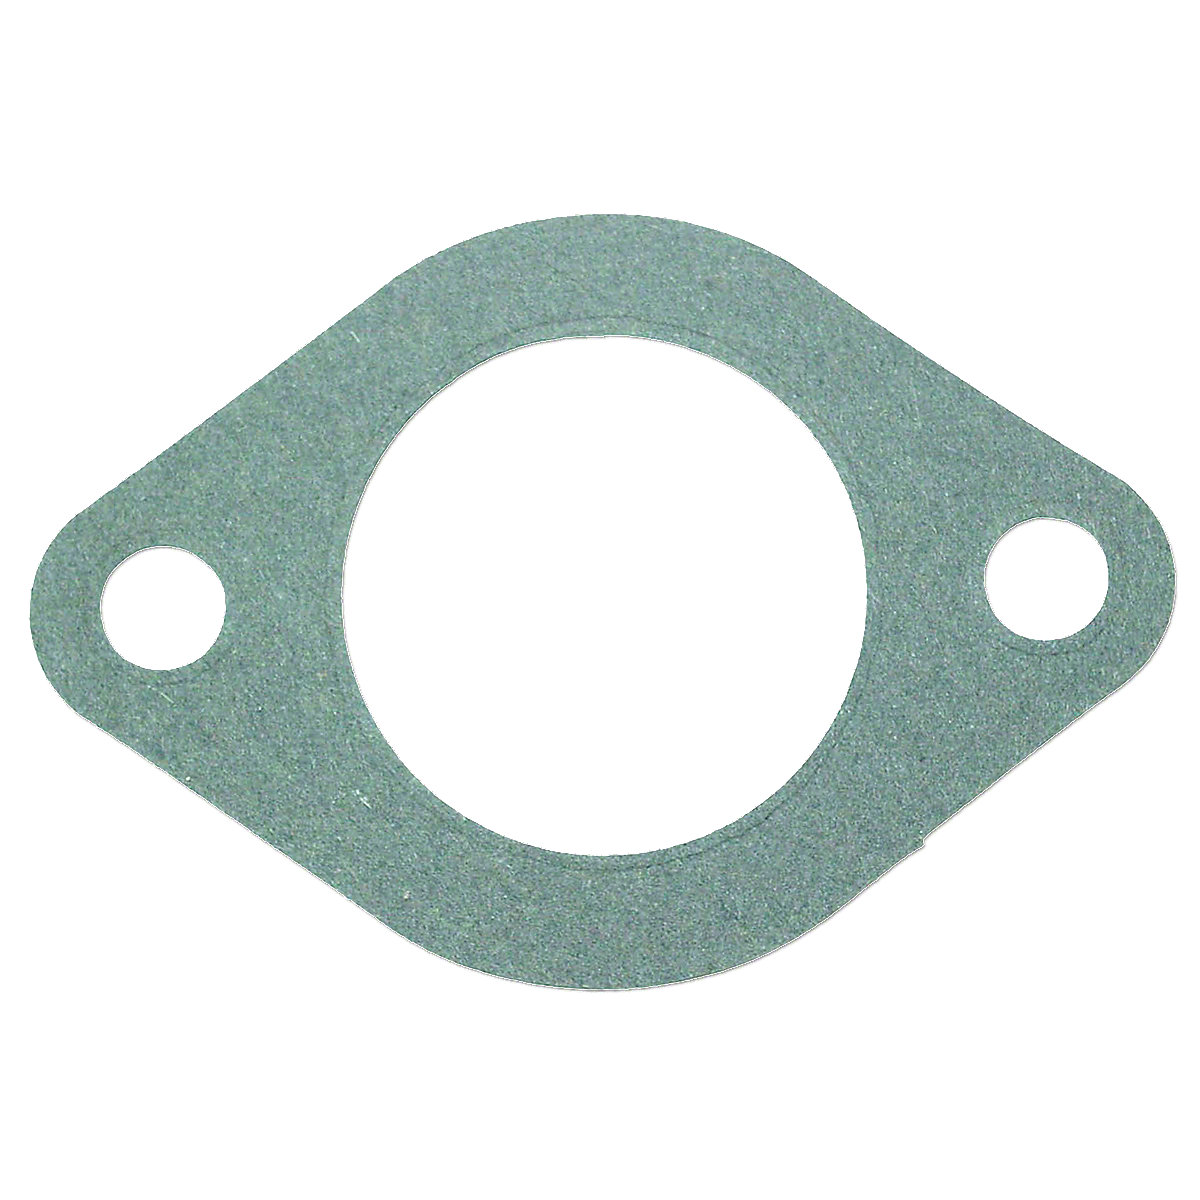 Carburetor To Manifold Mounting Gasket For Allis Chalmers: D19 Gas Tractors.